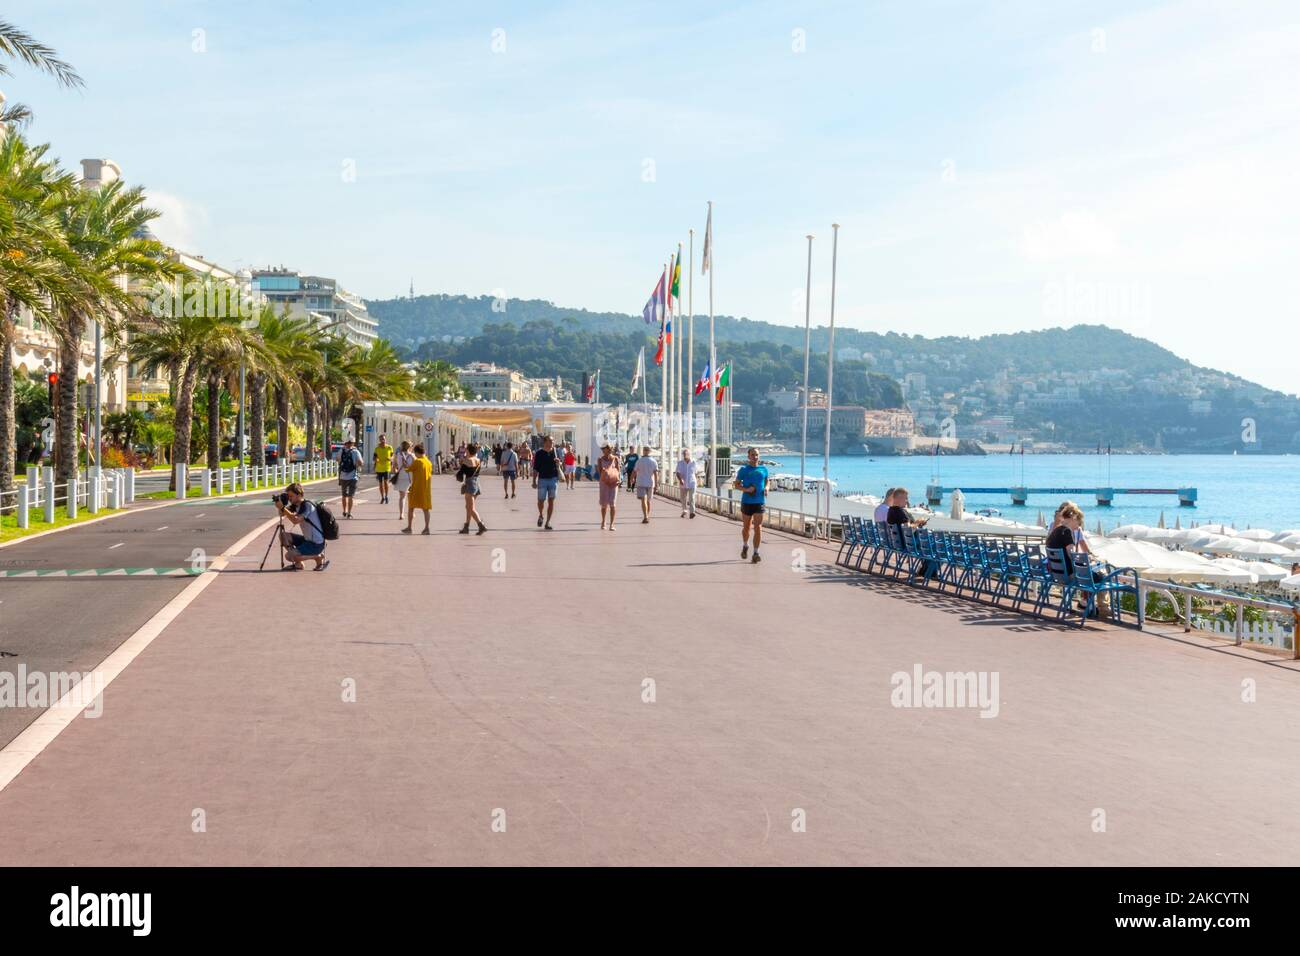 Joggers, walkers and photographers enjoy a summer day on the Promenade des Anglais at the resort city of Nice France on the Mediterranean Sea Stock Photo